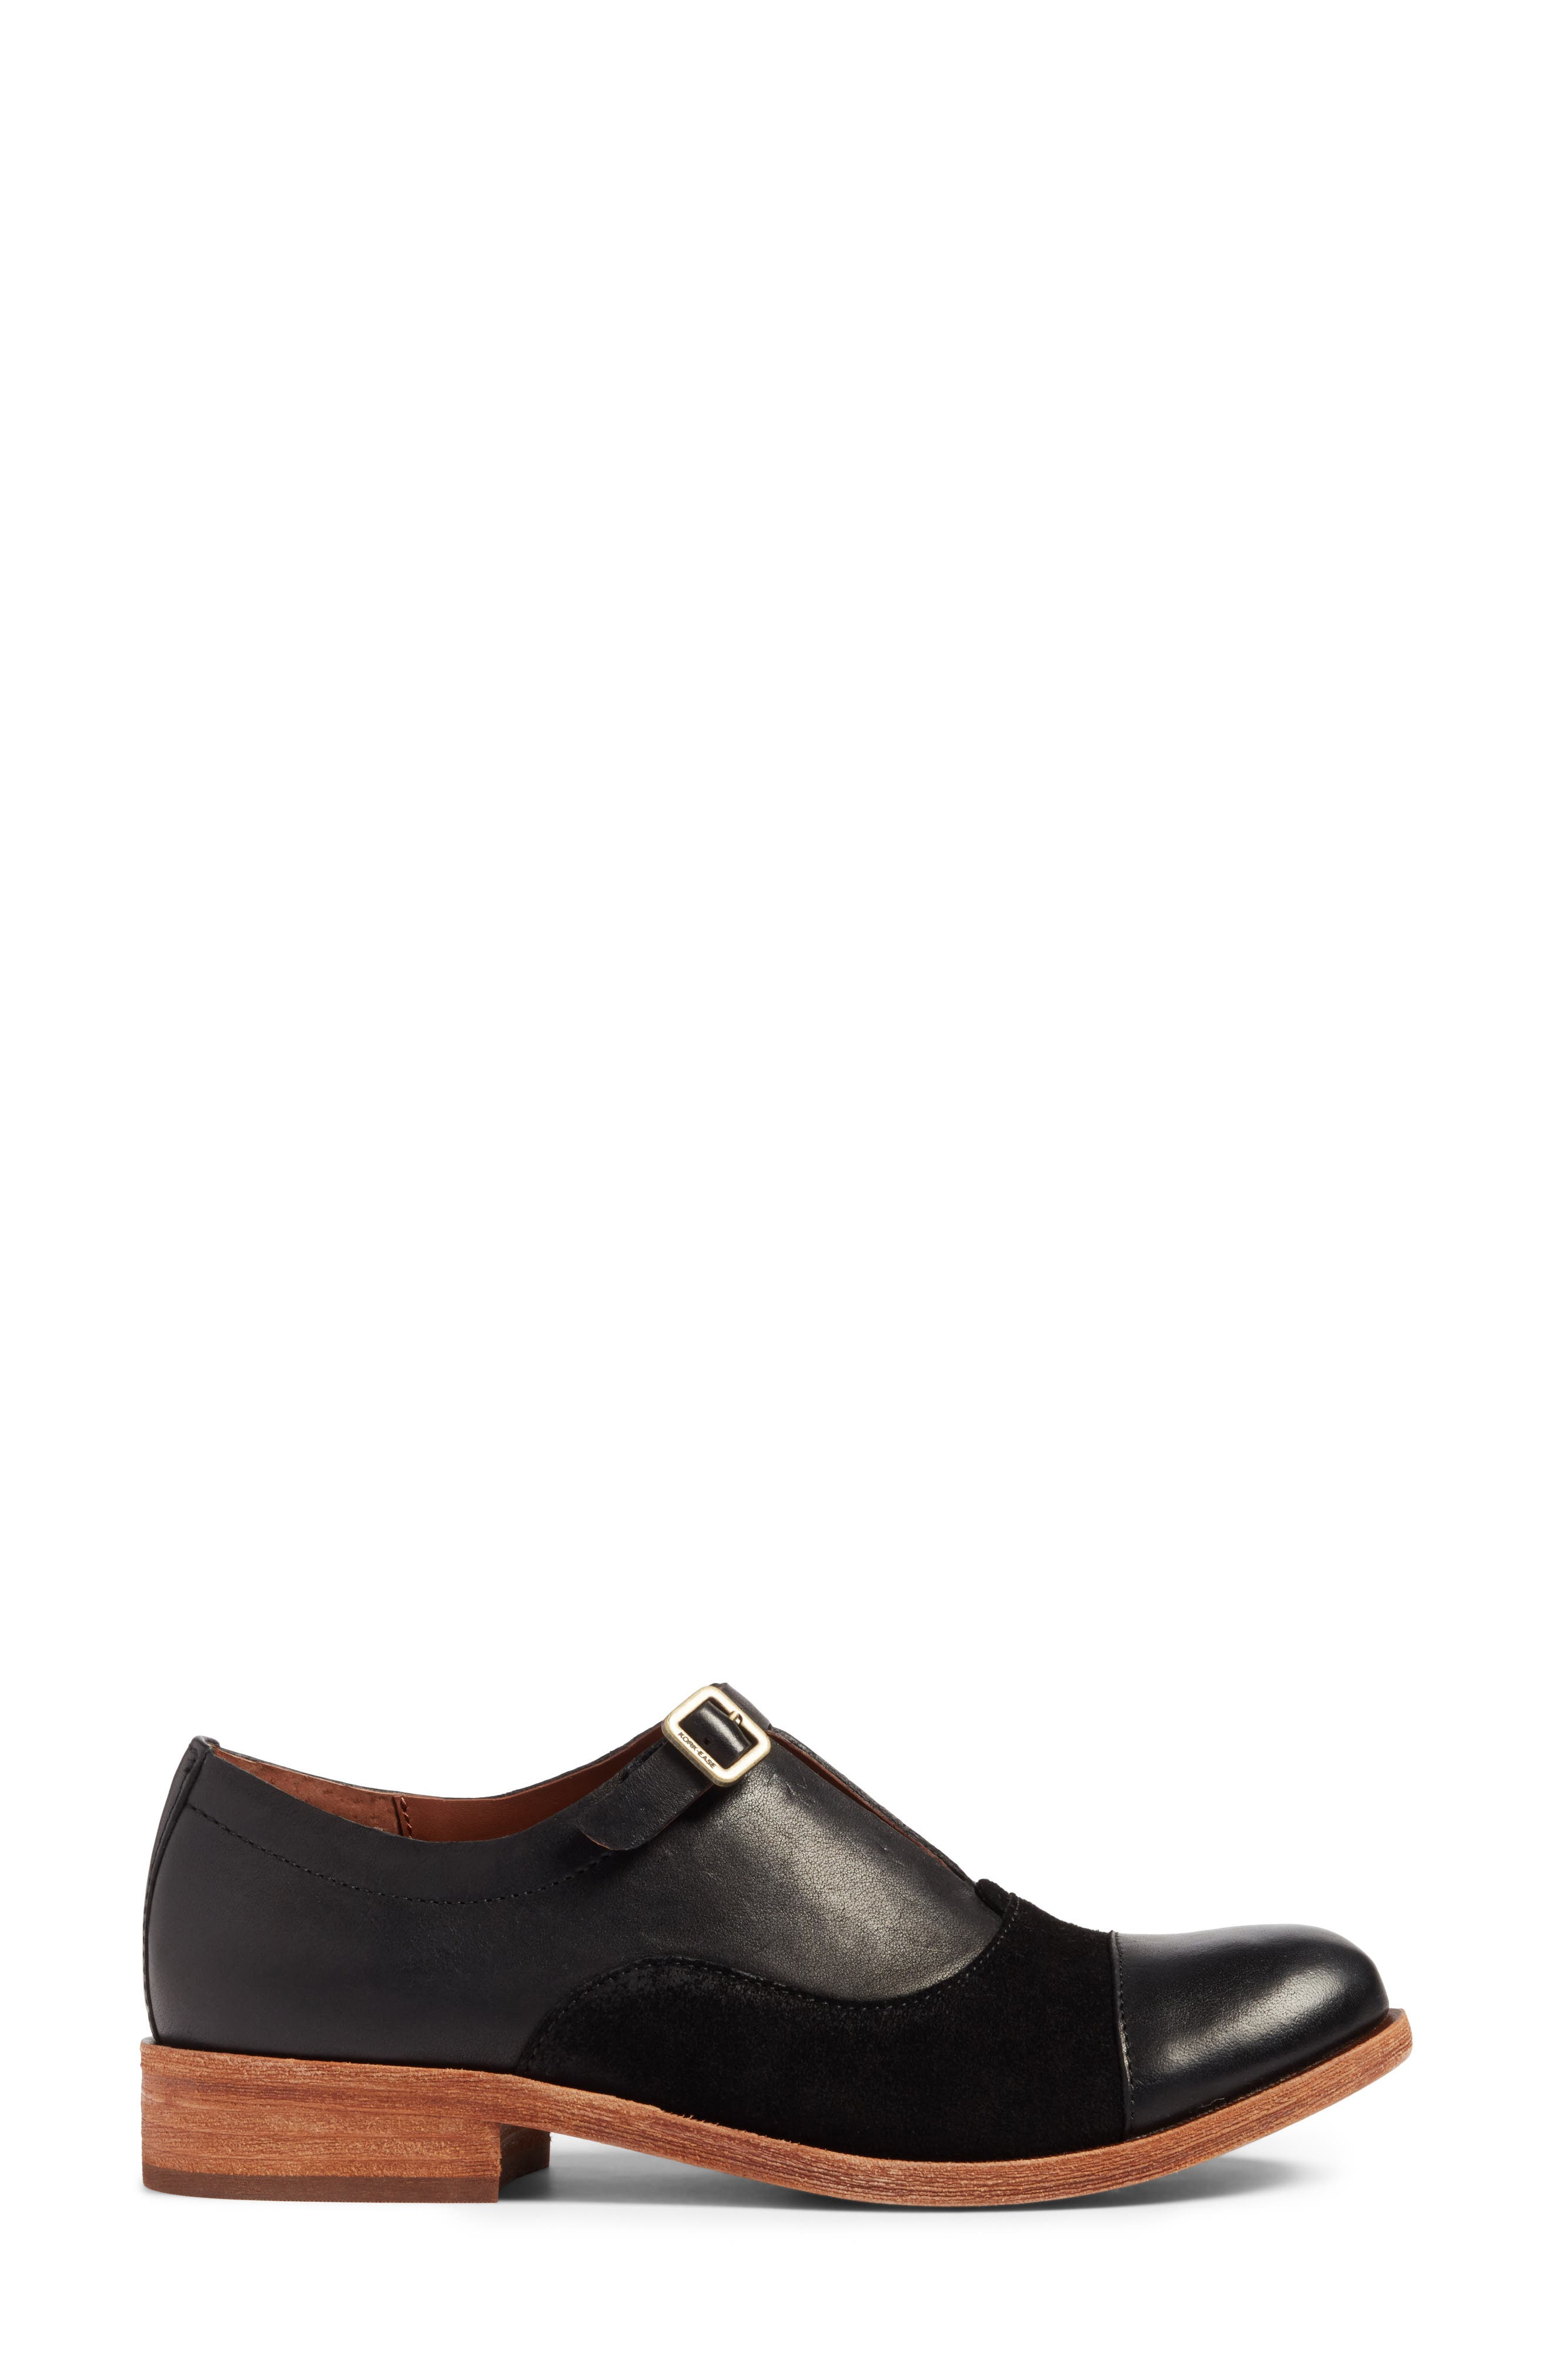 'Niseda' Oxford,                             Alternate thumbnail 4, color,                             Black Leather Suede Combo